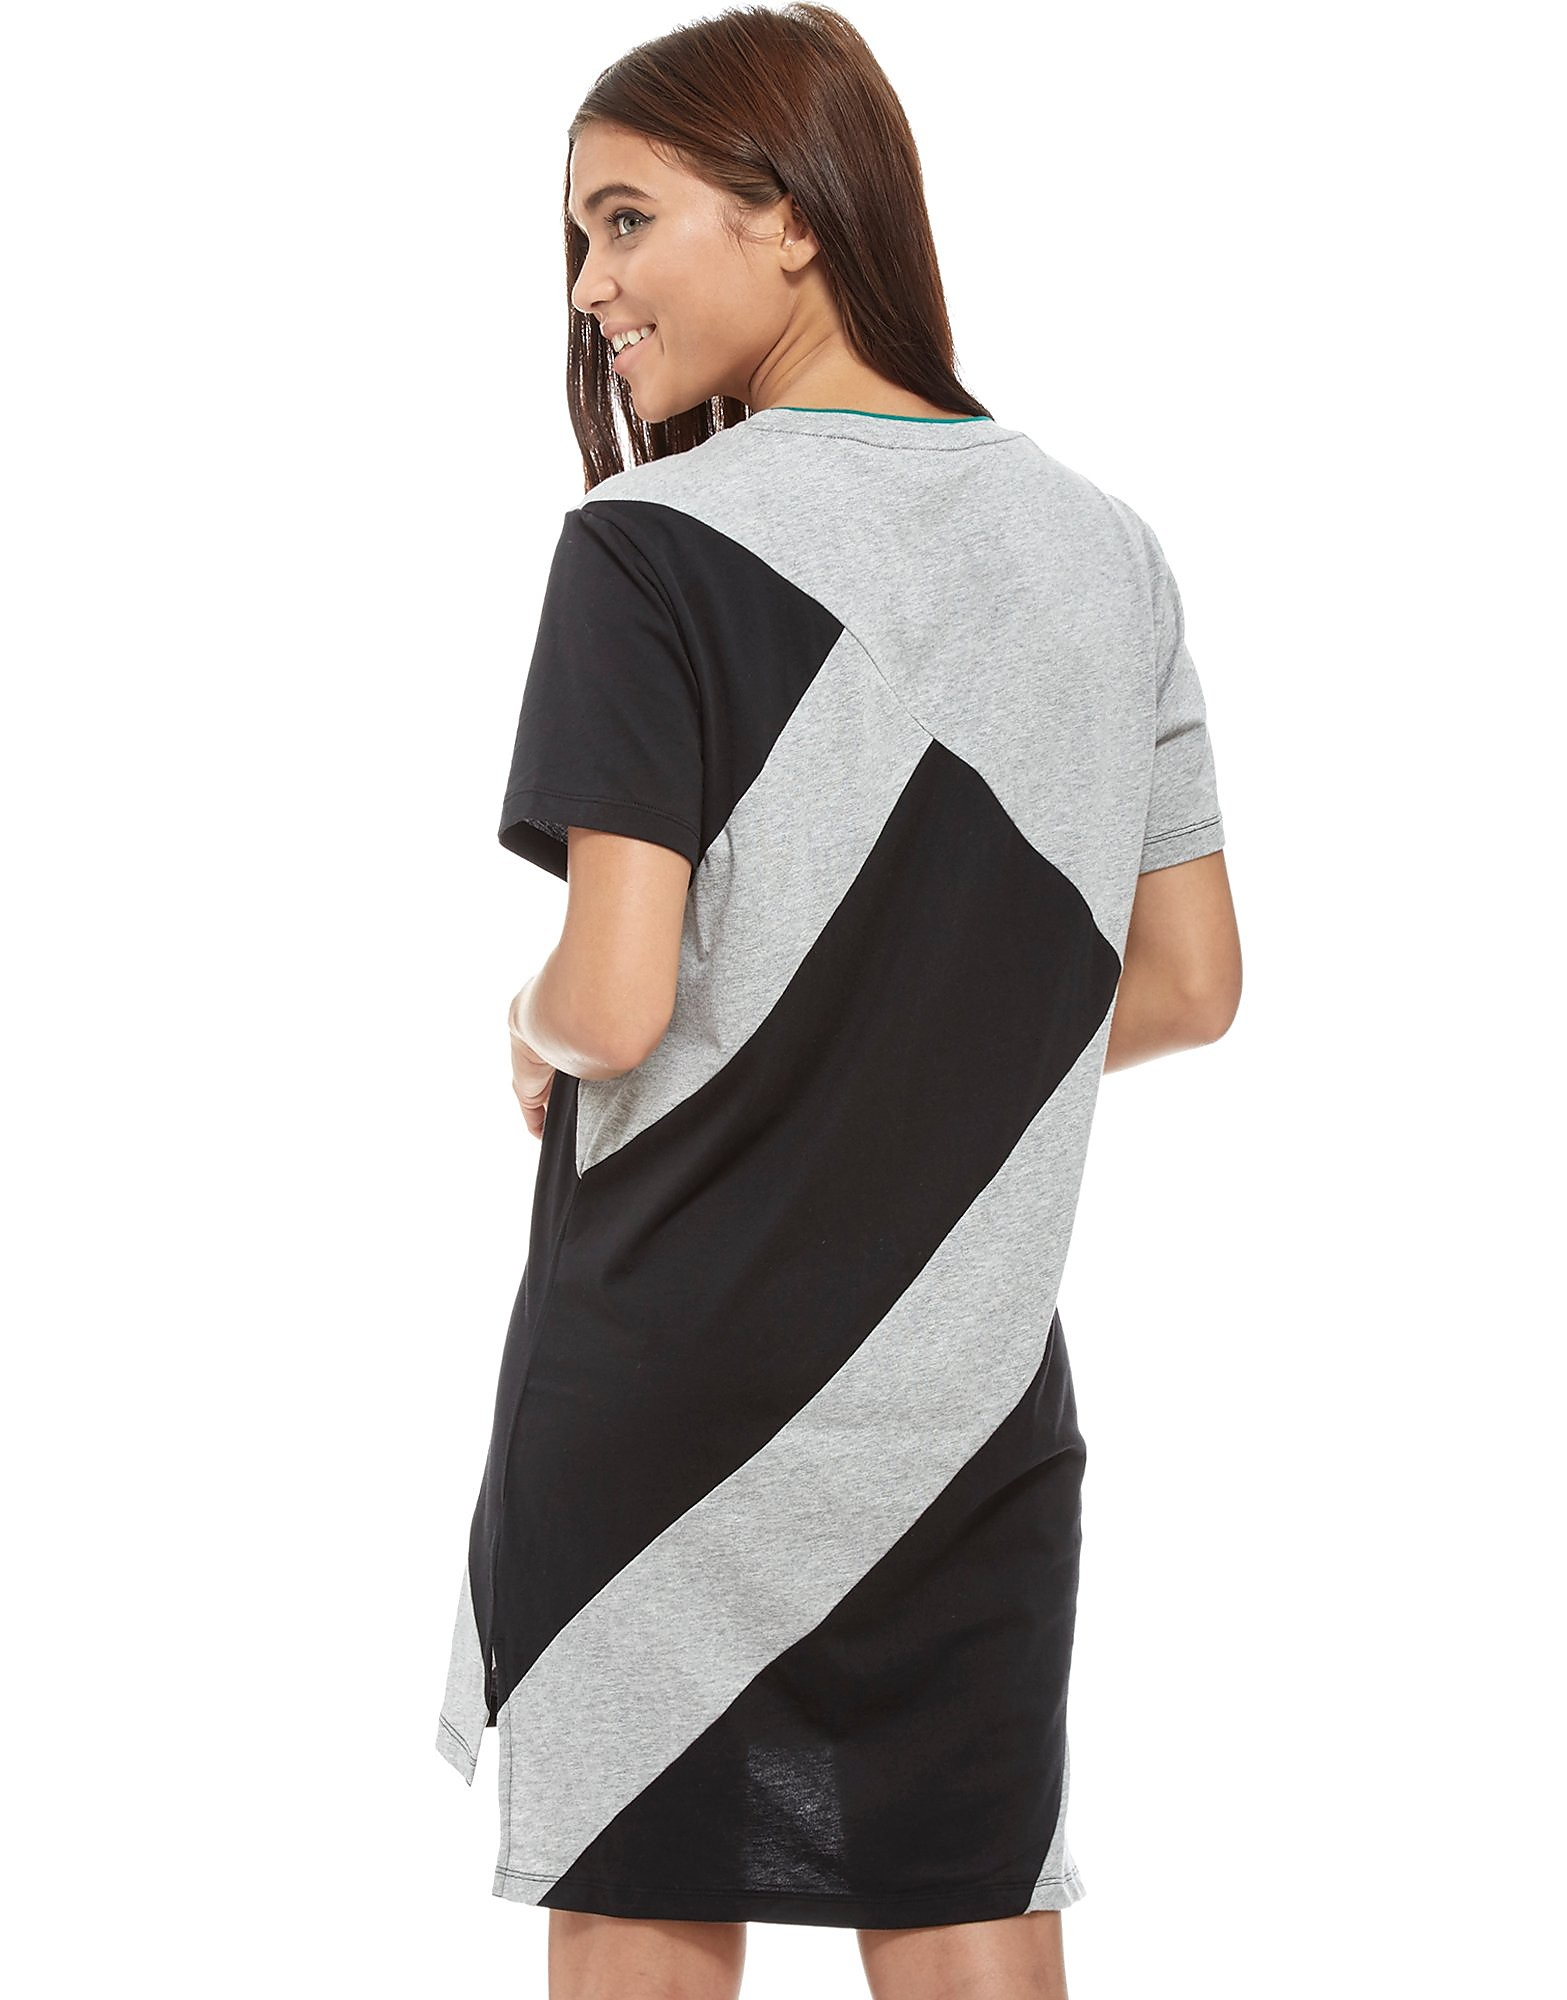 adidas Originals EQT T-Shirt Dress